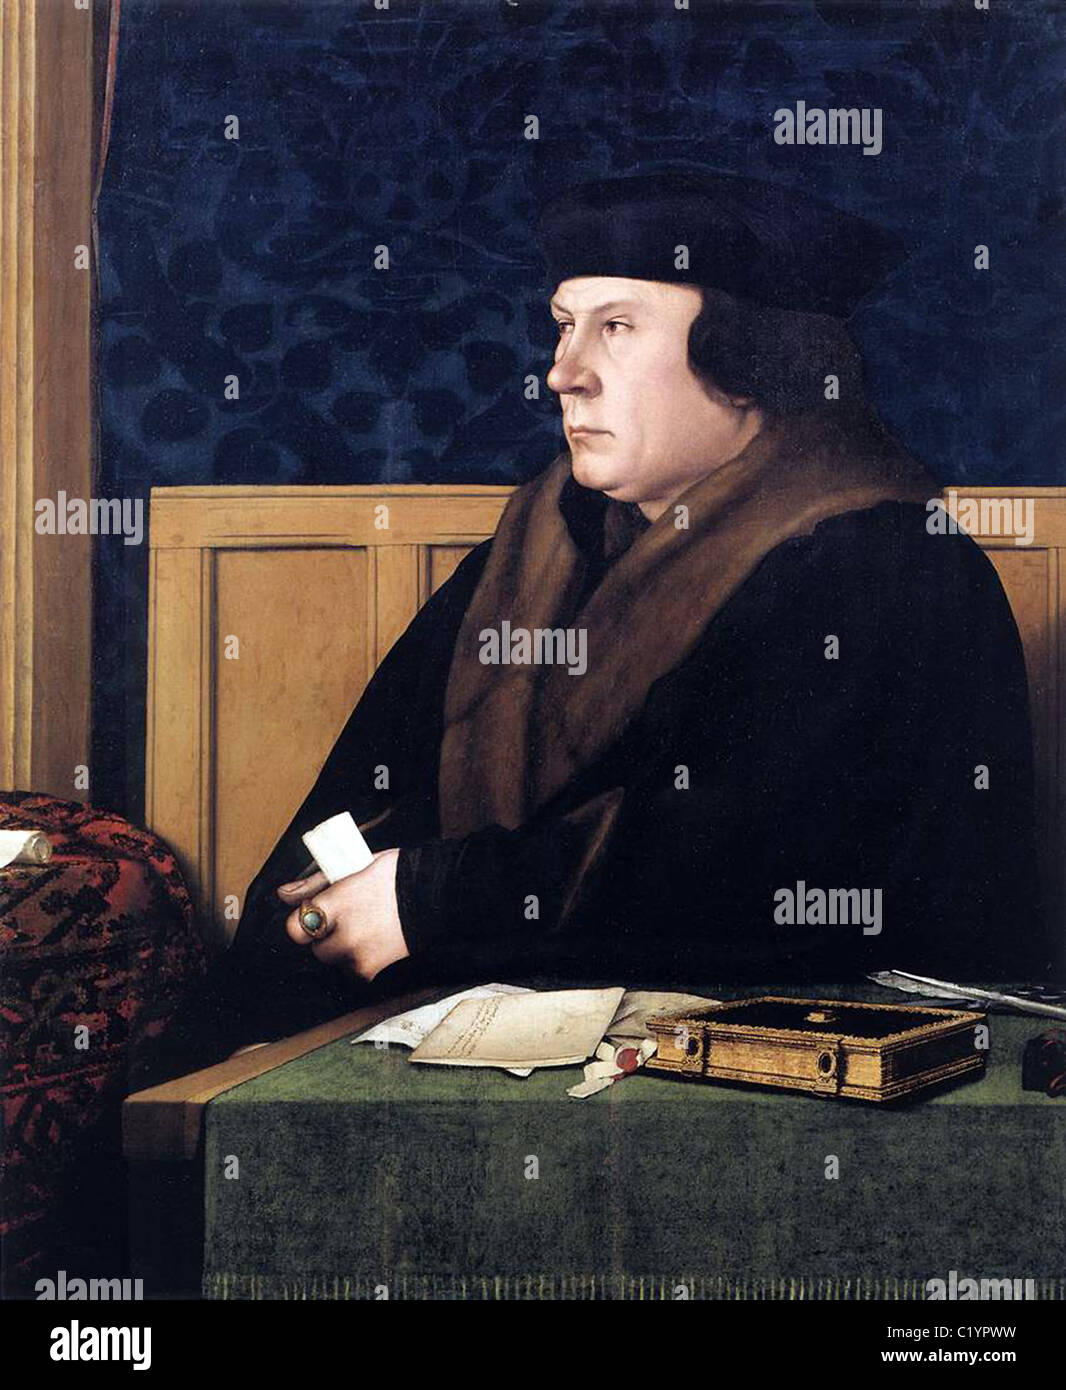 Thomas Cromwell, 1st Earl of Essex. - Stock Image